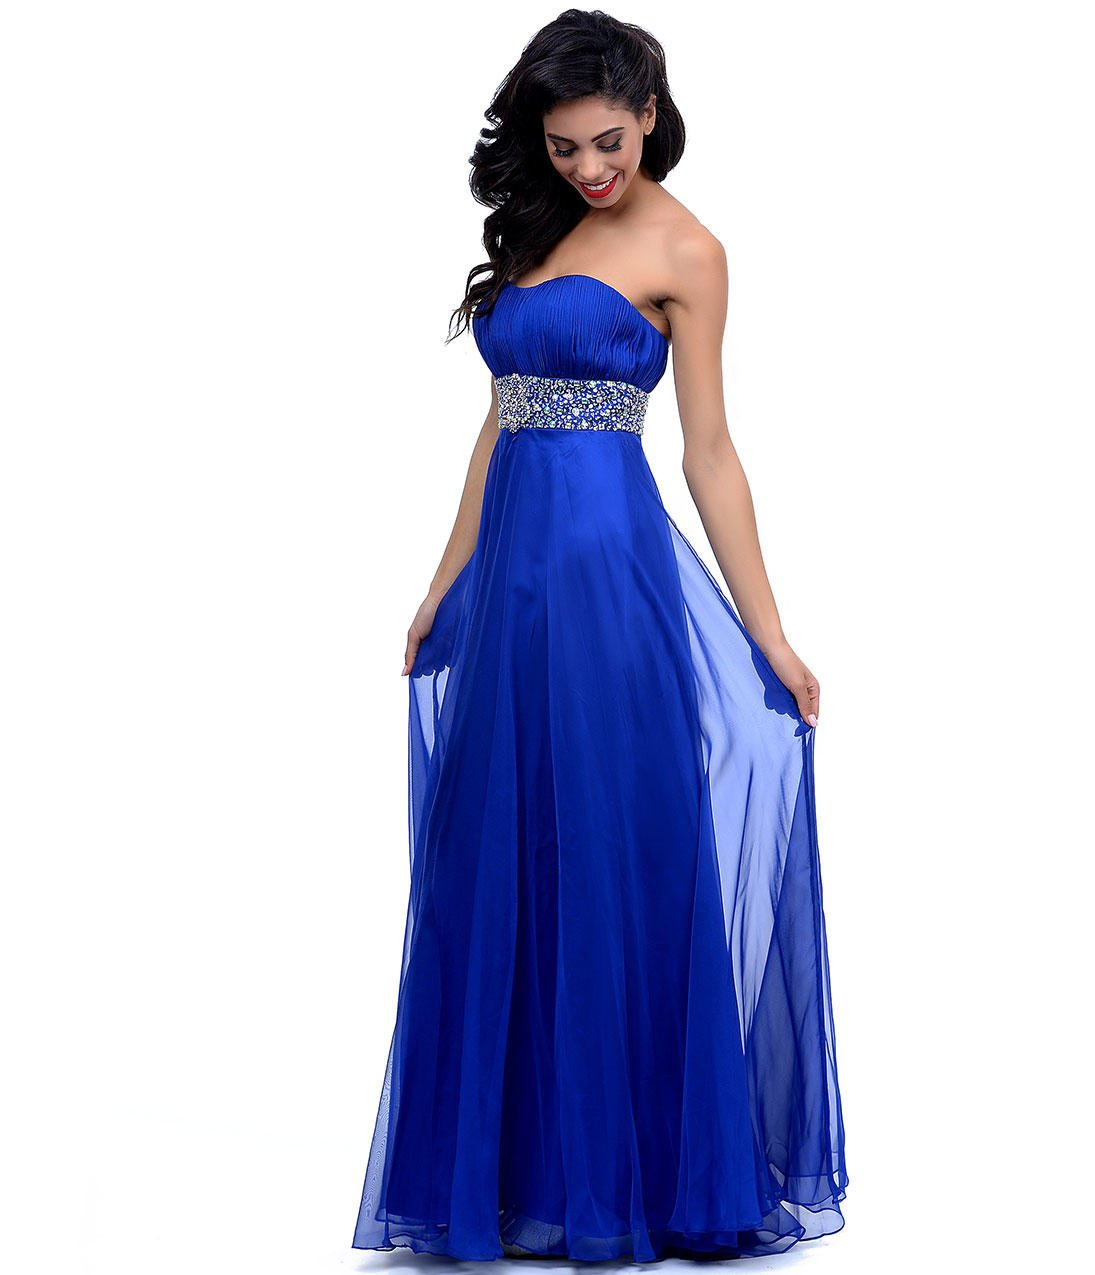 2014 Prom Dresses Royal Blue Beaded from Unique Vintage